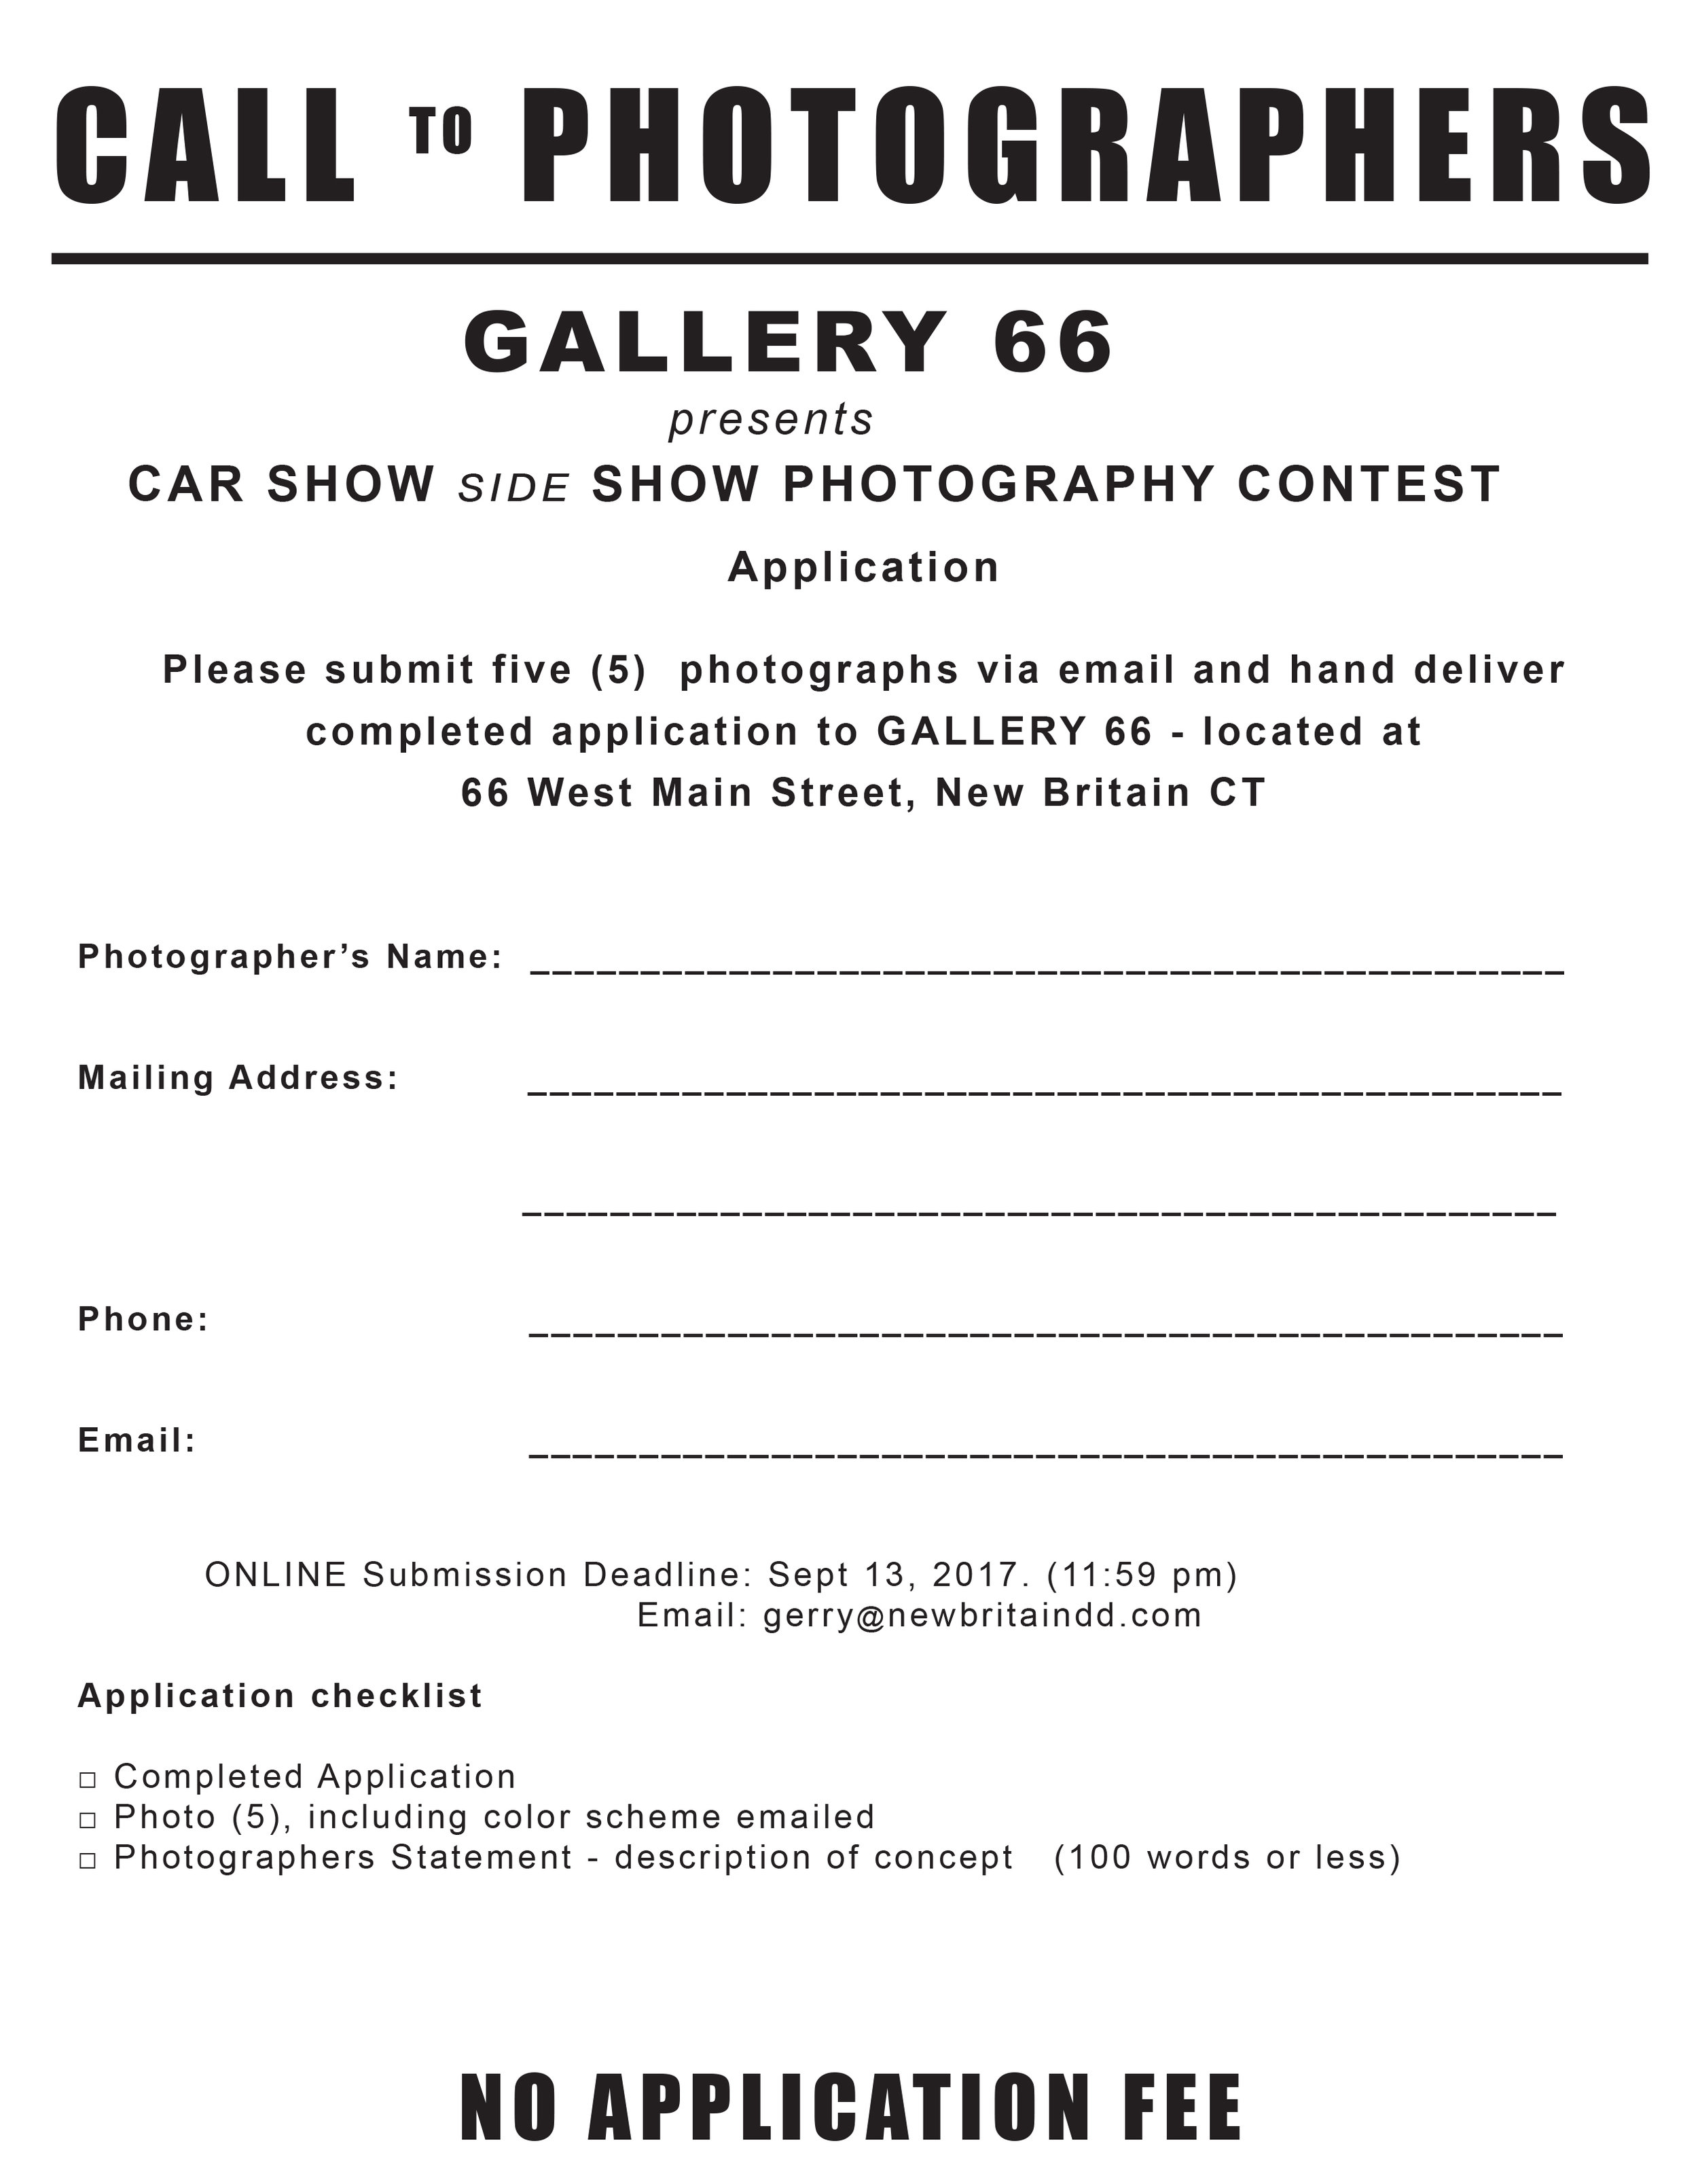 Car Show Artist Application.jpg